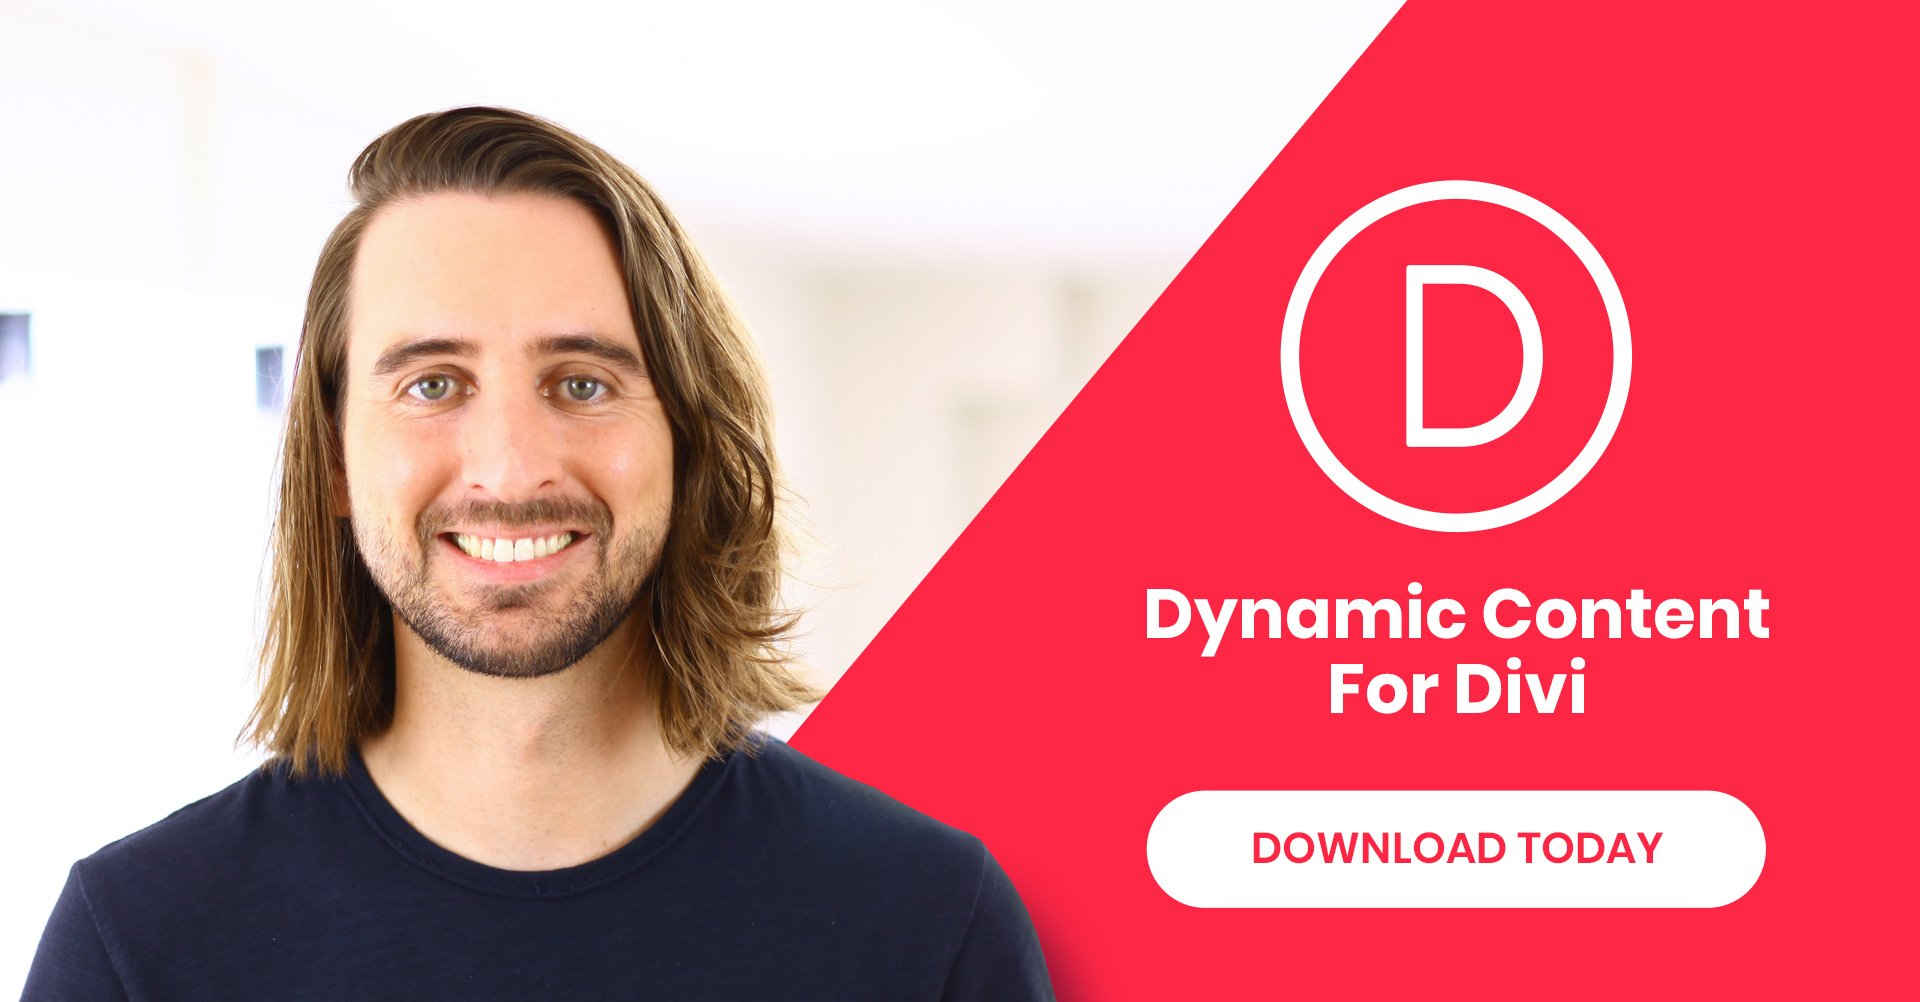 Dynamic Content For Divi Is Available Now!